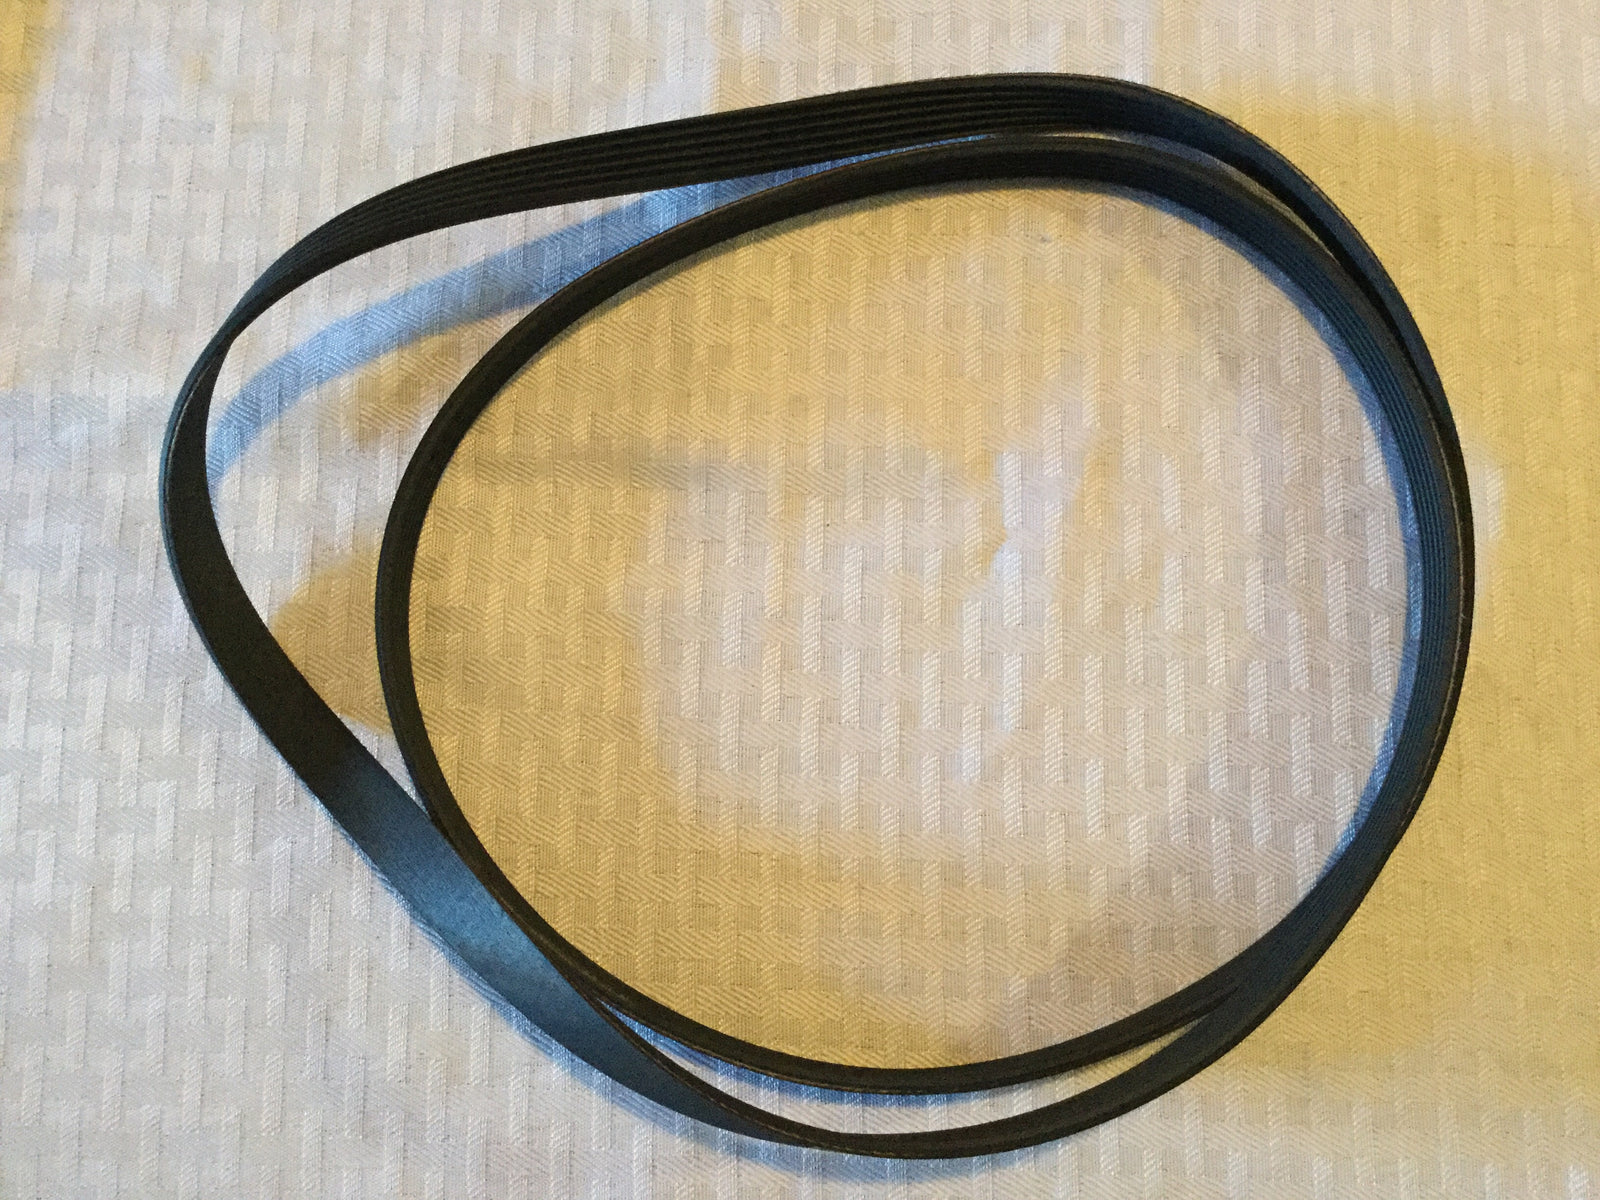 Workman 350 II Multi Mixer - Belt - IMER Part Number 3209081, gearbox drive 6 rib serpentine belt.